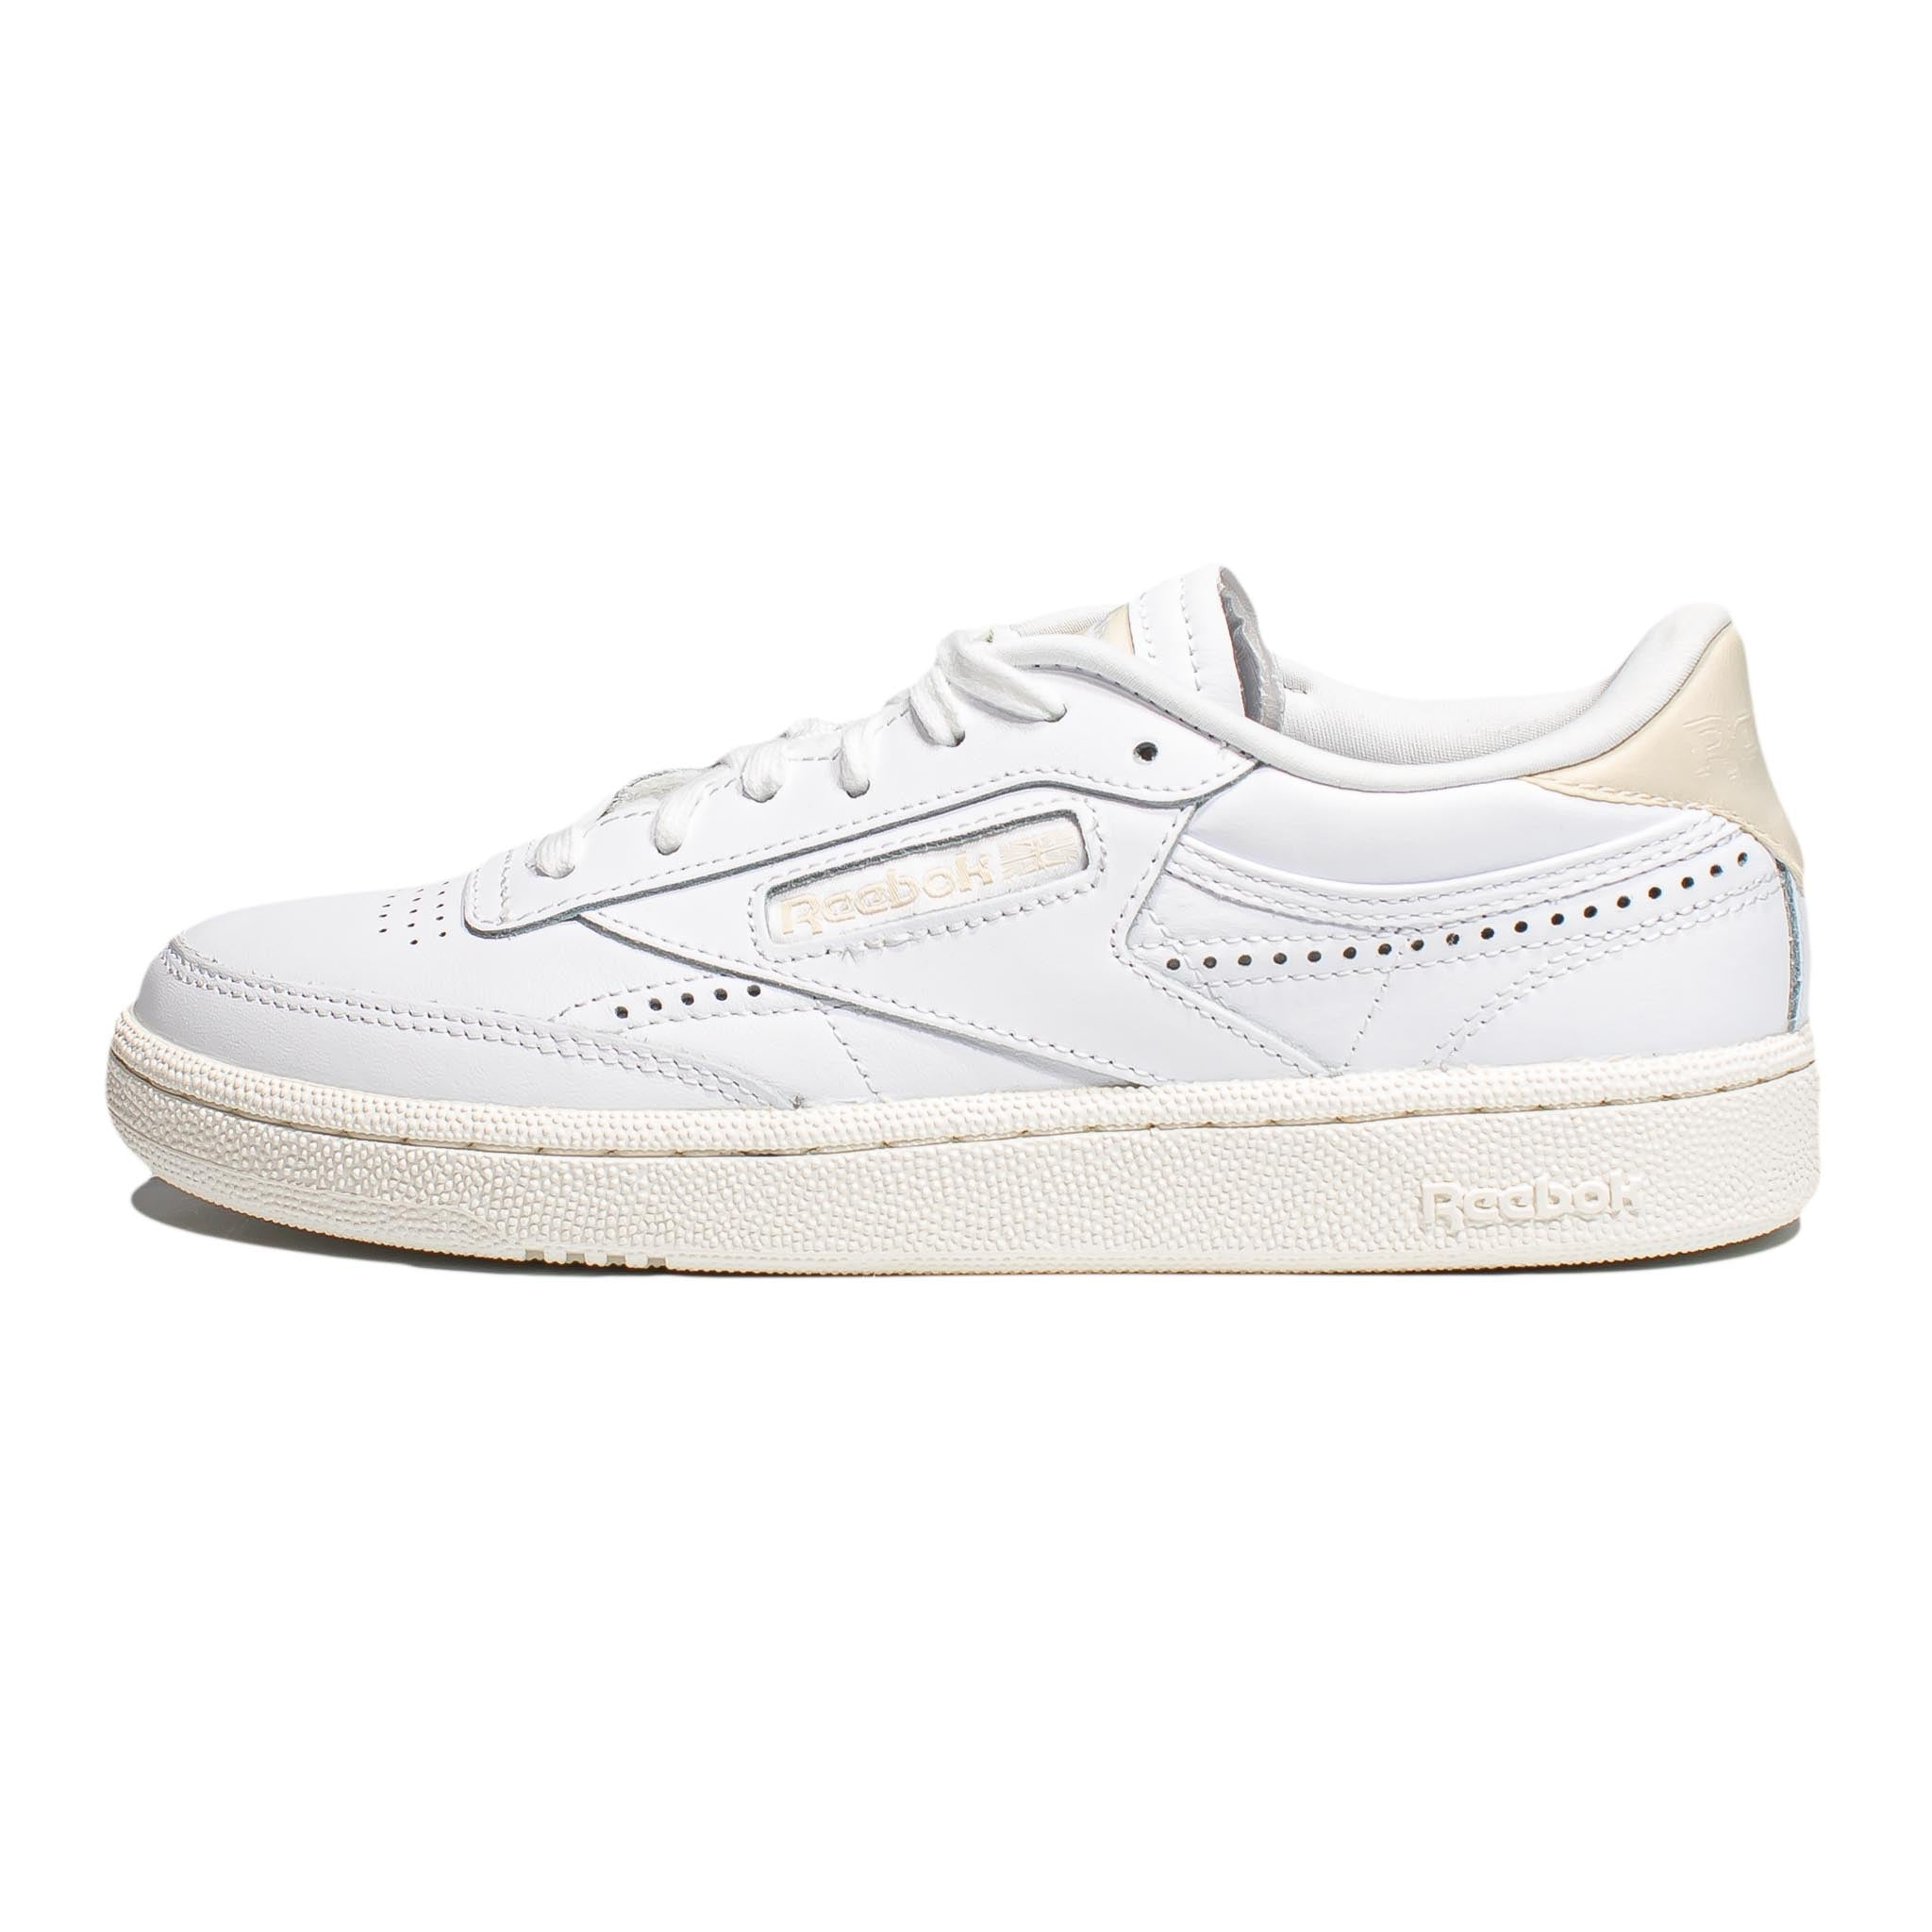 Reebok Club C 85 White/Alabaster